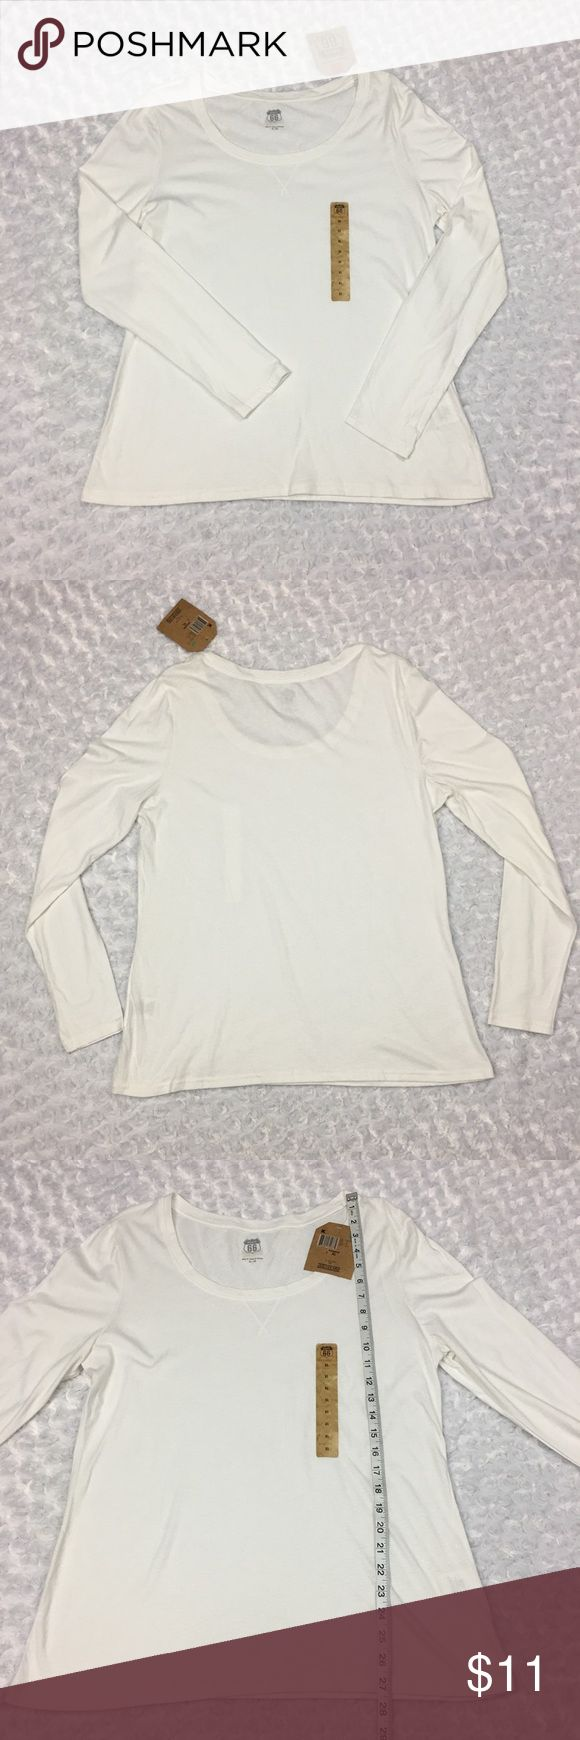 NWT Thin Soft White Longsleeve Top with Scoop Neck NWT Route 66 Womens XL Thin Soft White Longsleeve Top with Scoop Neck  Size: Womens XL, SEE PHOTOS FOR MEASUREMENTS  Condition: New with tags.  * This listing is for ONE (1) Top *  - Thin, Soft material  * See photos for measurements and more details *  Please note: Color may vary slightly due to different display screen calibrations. [D-42] Route 66 Tops Tees - Long Sleeve